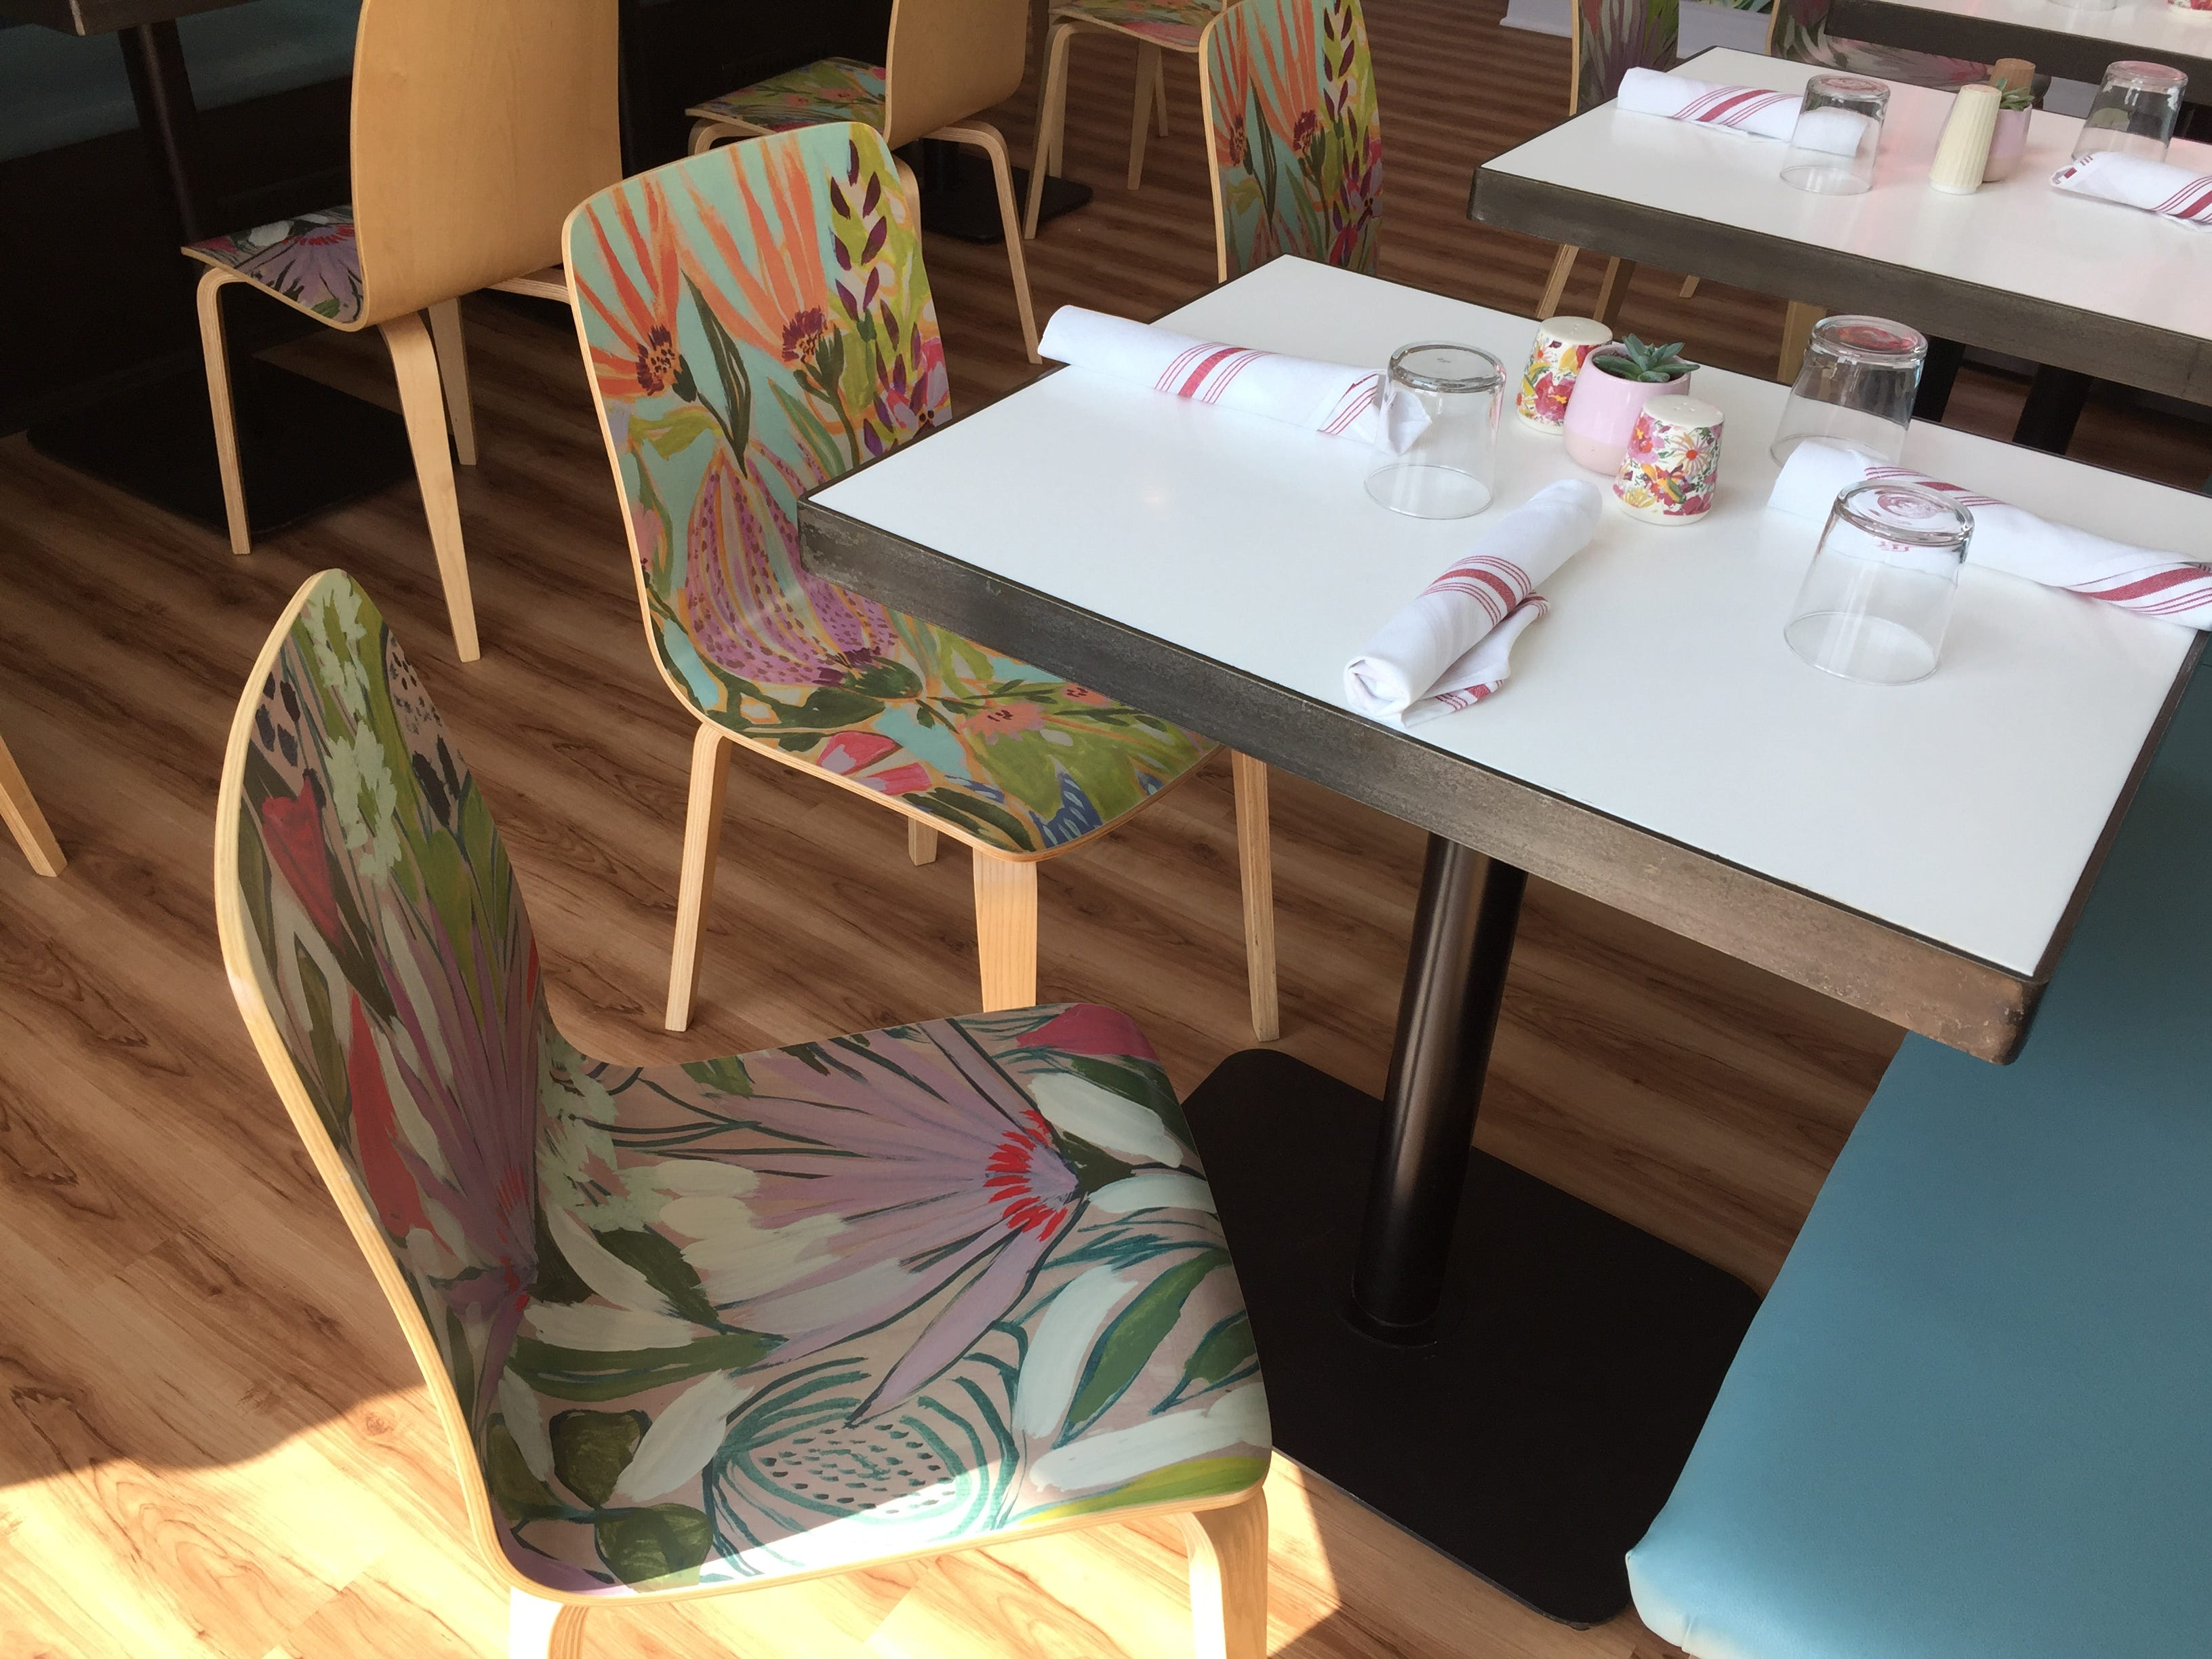 Floral print chairs at Just Pop In! popcorn bar and cafe at 6406 Cornell Ave. in the Broad Ripple  community of Indianapolis.